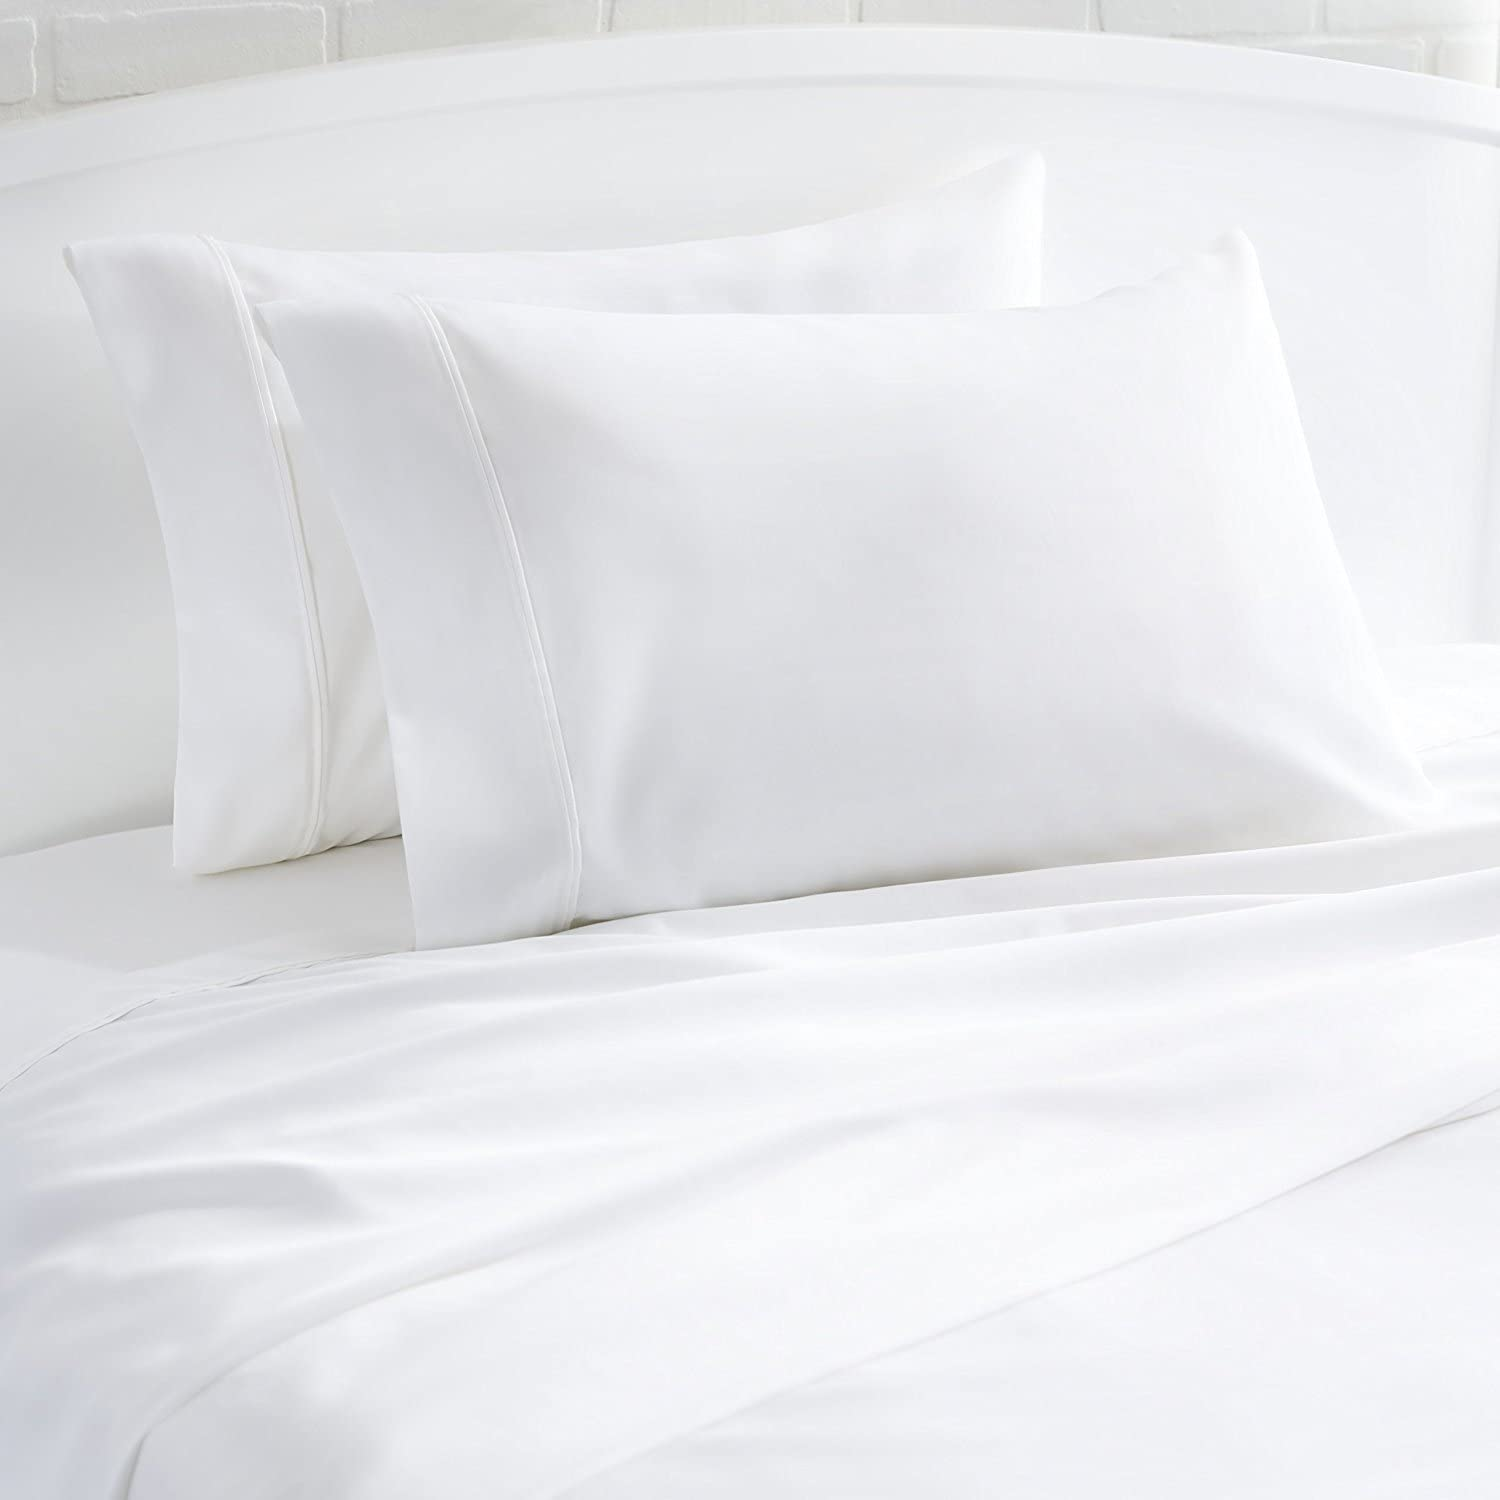 Thread Spread 100% Egyptian Cotton 1000 Thread Count Ultra Soft Pillow Case Set - Durable and Silky Soft (Queen Size Pillowcase) (White): Home & Kitchen